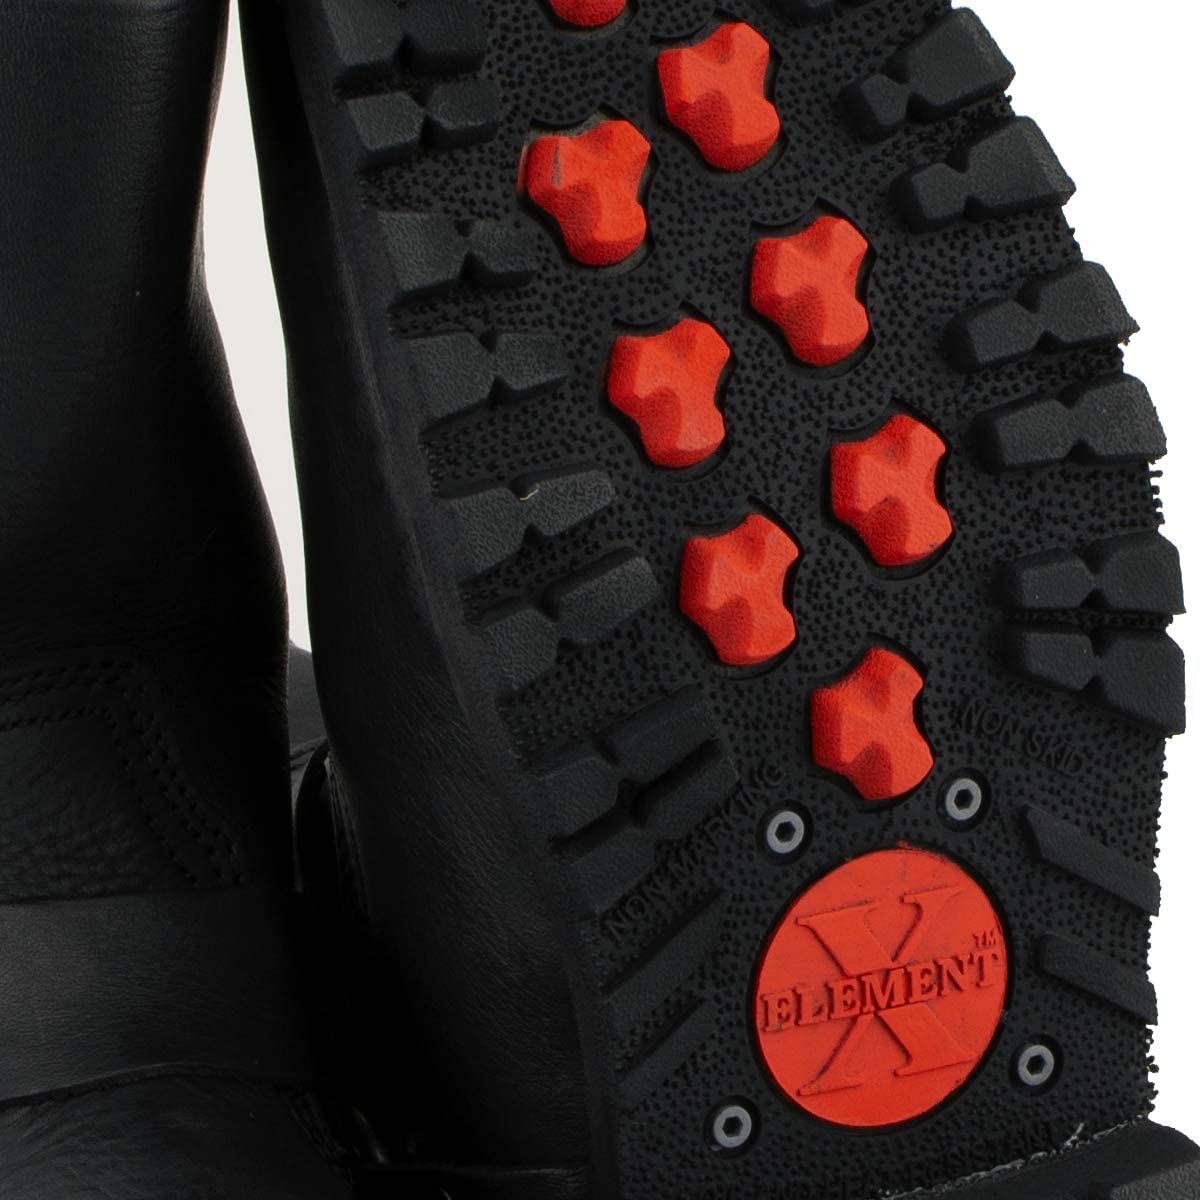 9.5 Xelement 1443 Mens Black Harness Motorcycle Biker Boots with Lug Sole